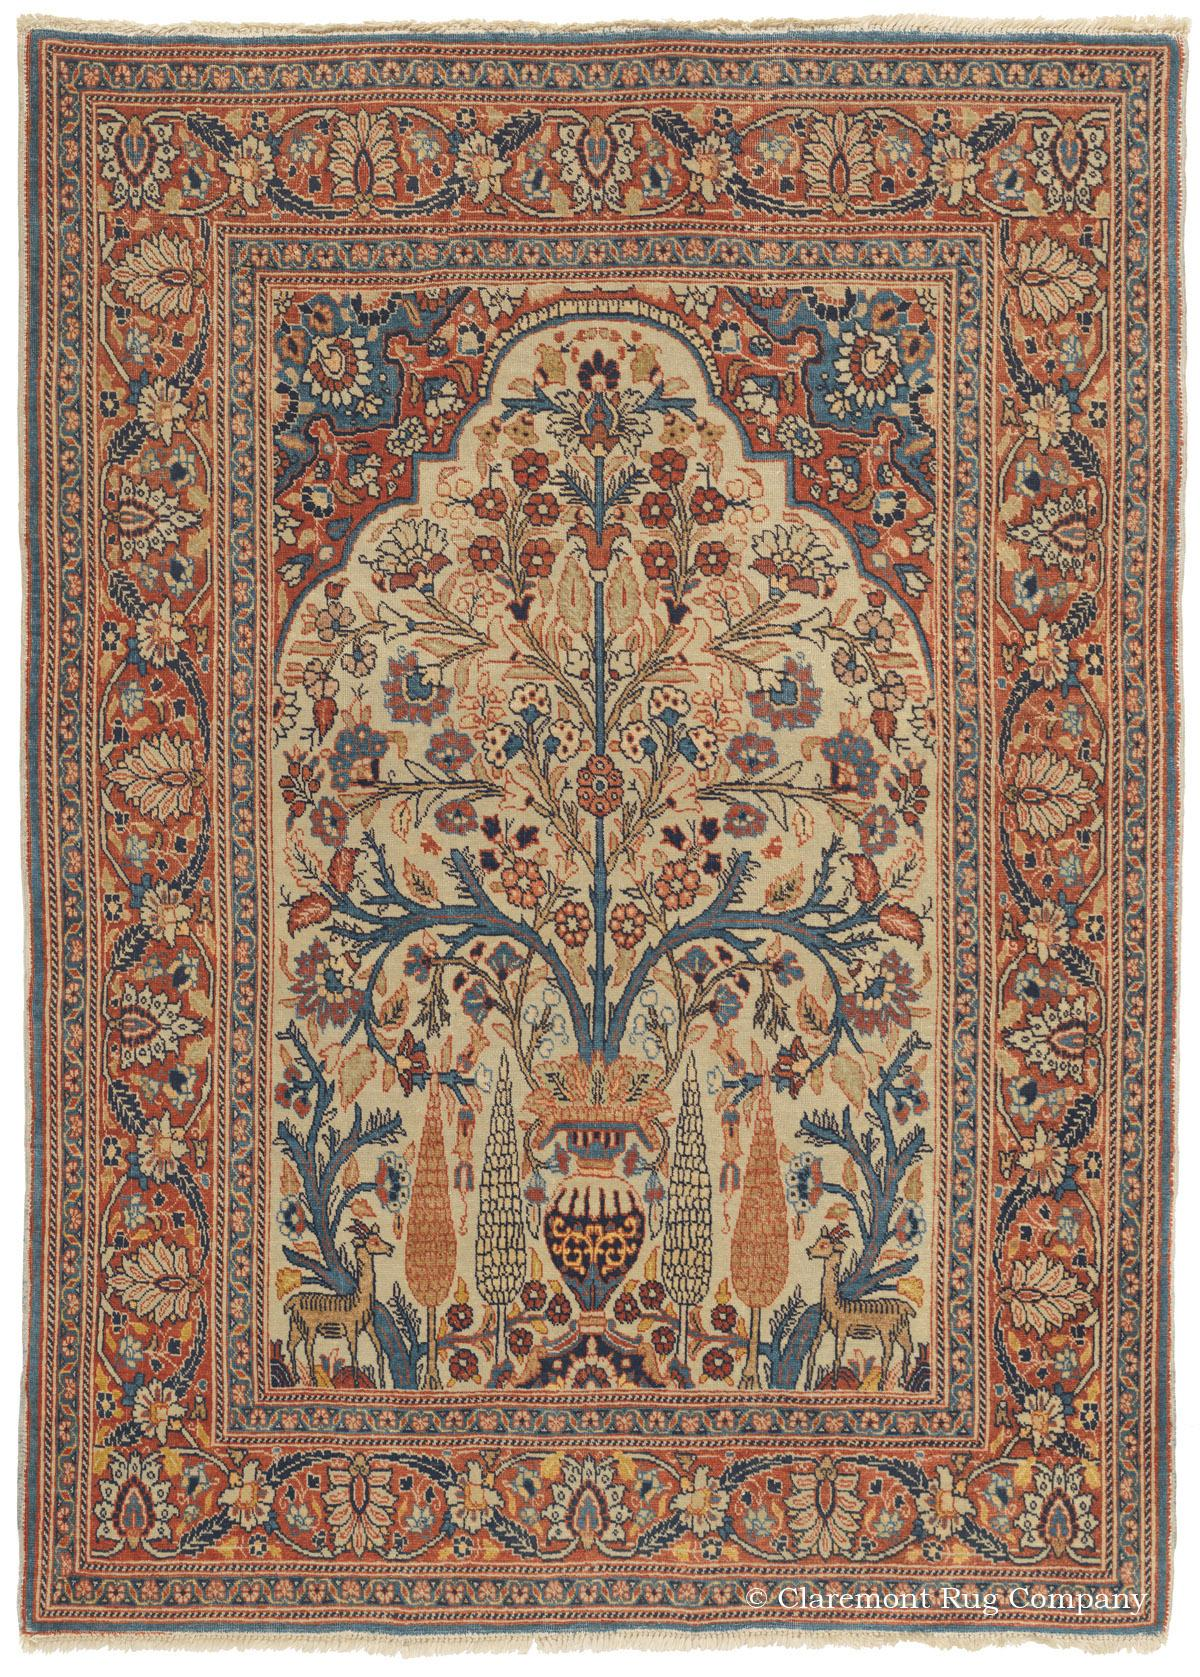 Antique Persian Tabriz Rug In Soft Colors